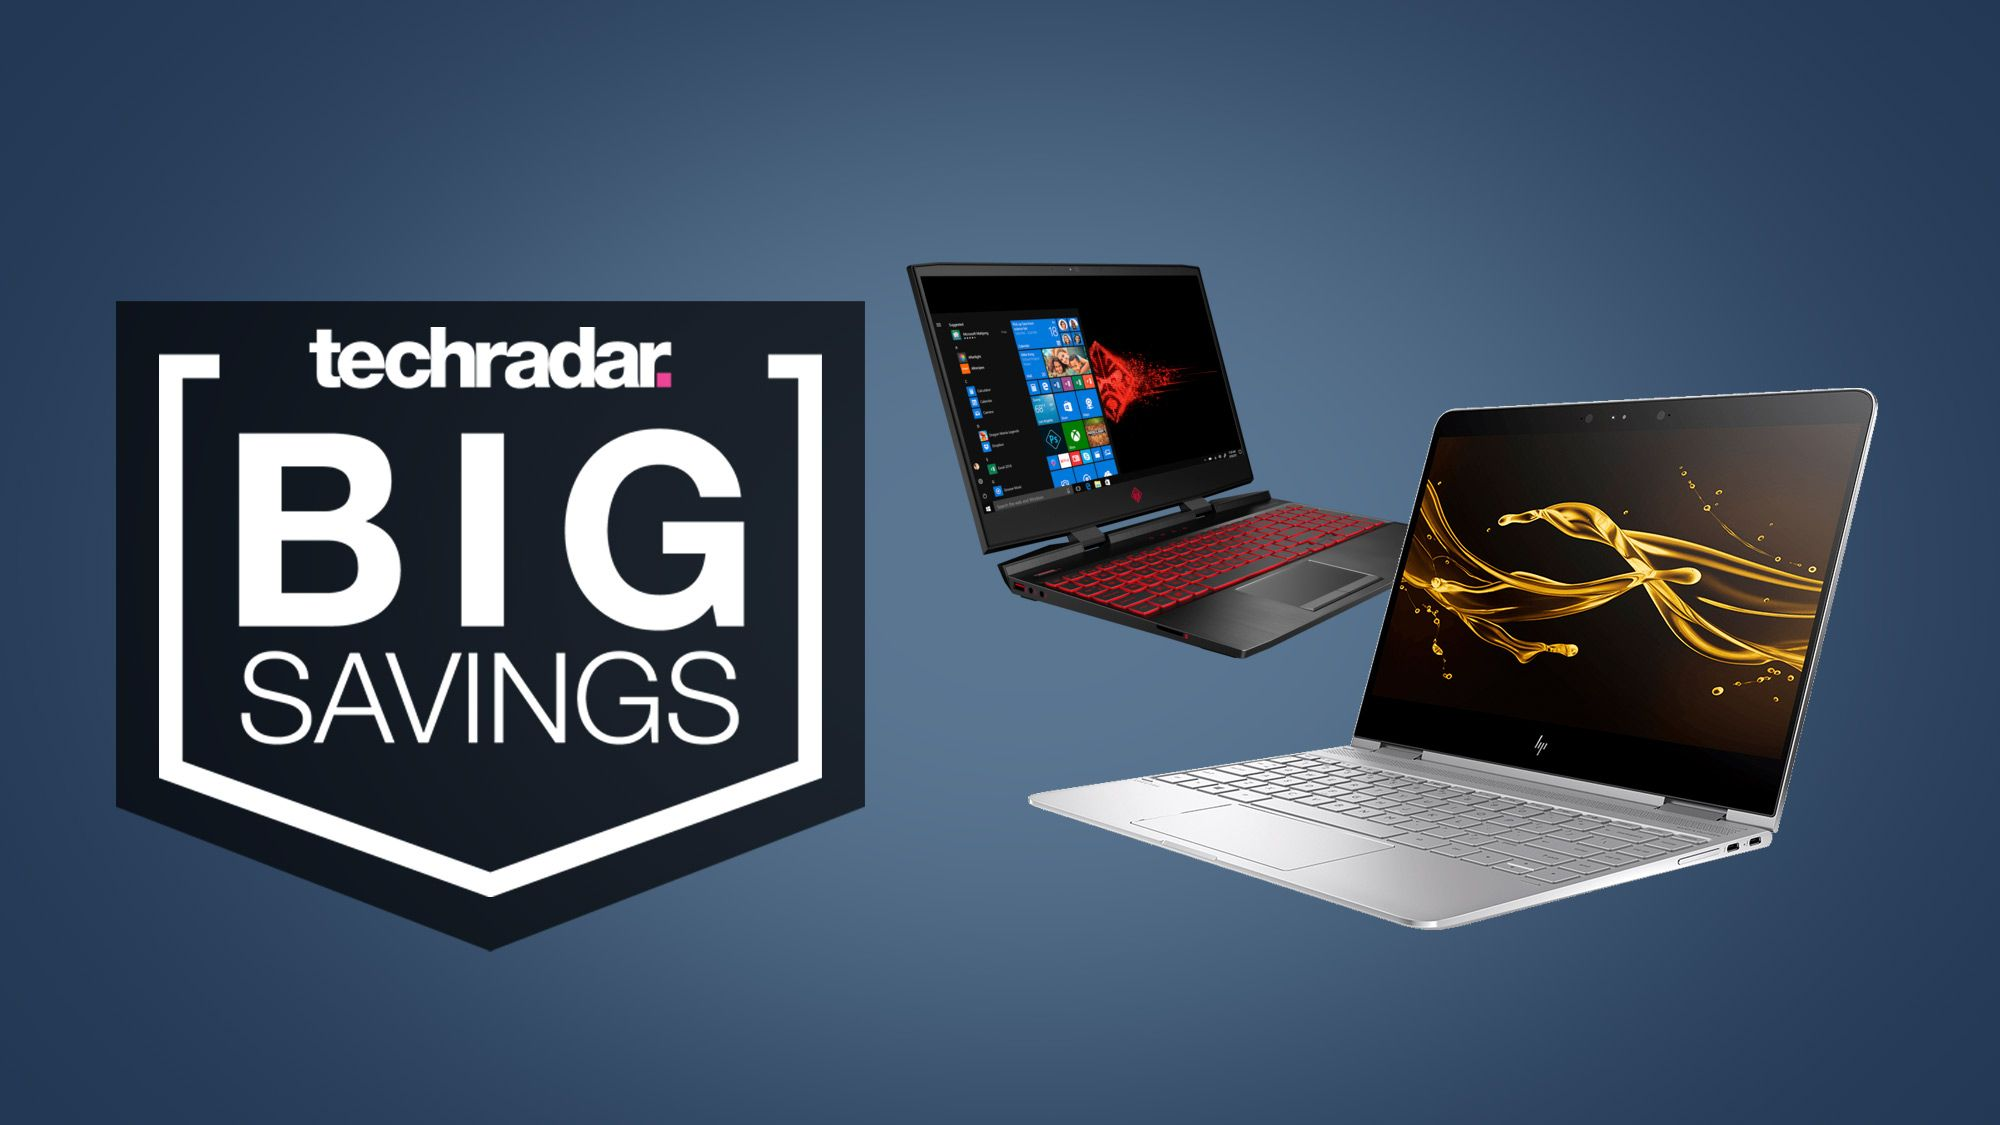 Hp Presidents Day Sales Extended Cheap Laptop Deals Continue Until Sunday In 2020 Laptop Cheap Laptop Deals Cheap Gaming Laptop